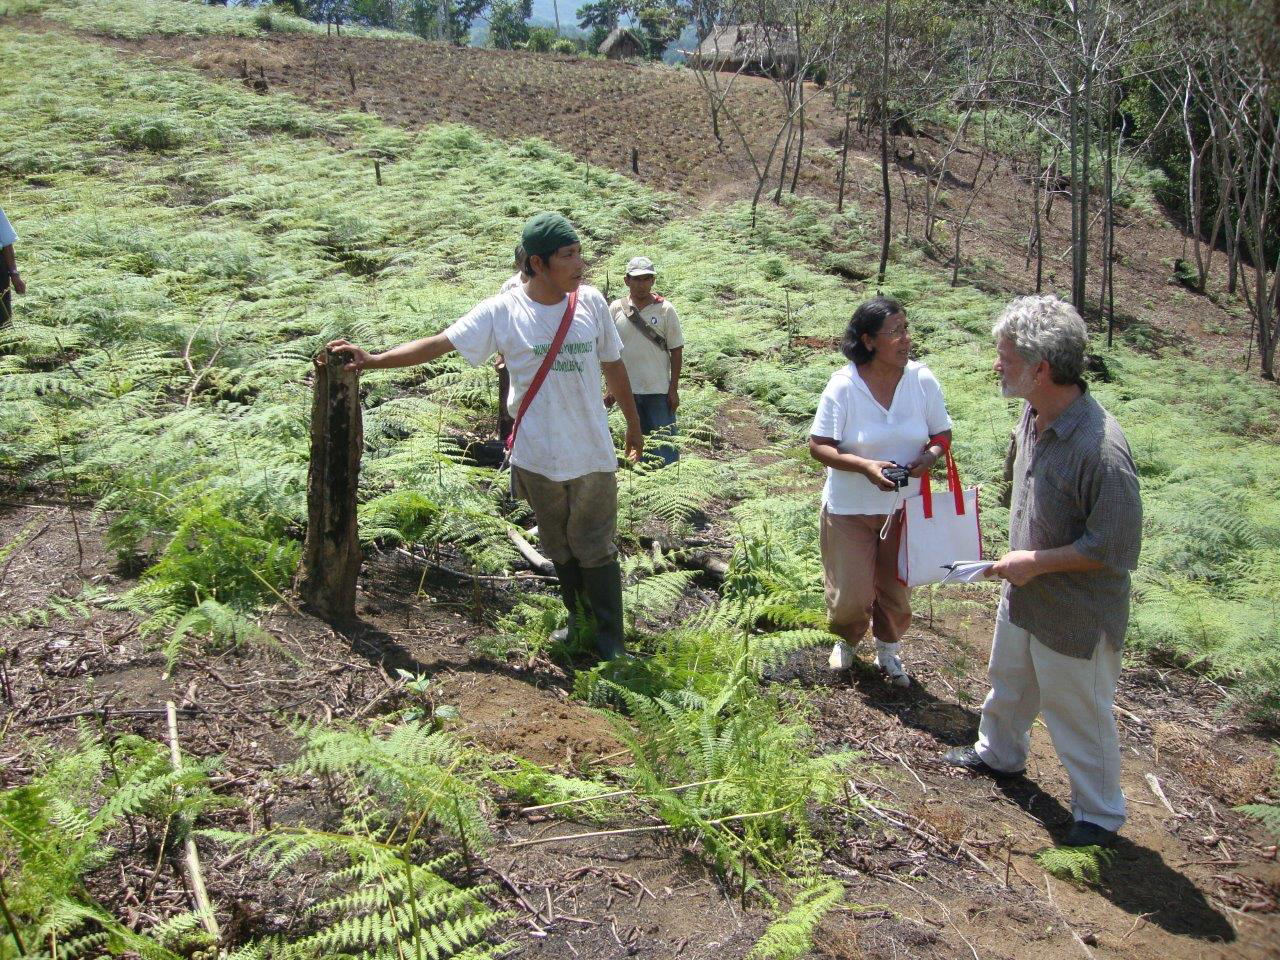 Our reforestation efforts in Peru help create carbon-neutral coffee.